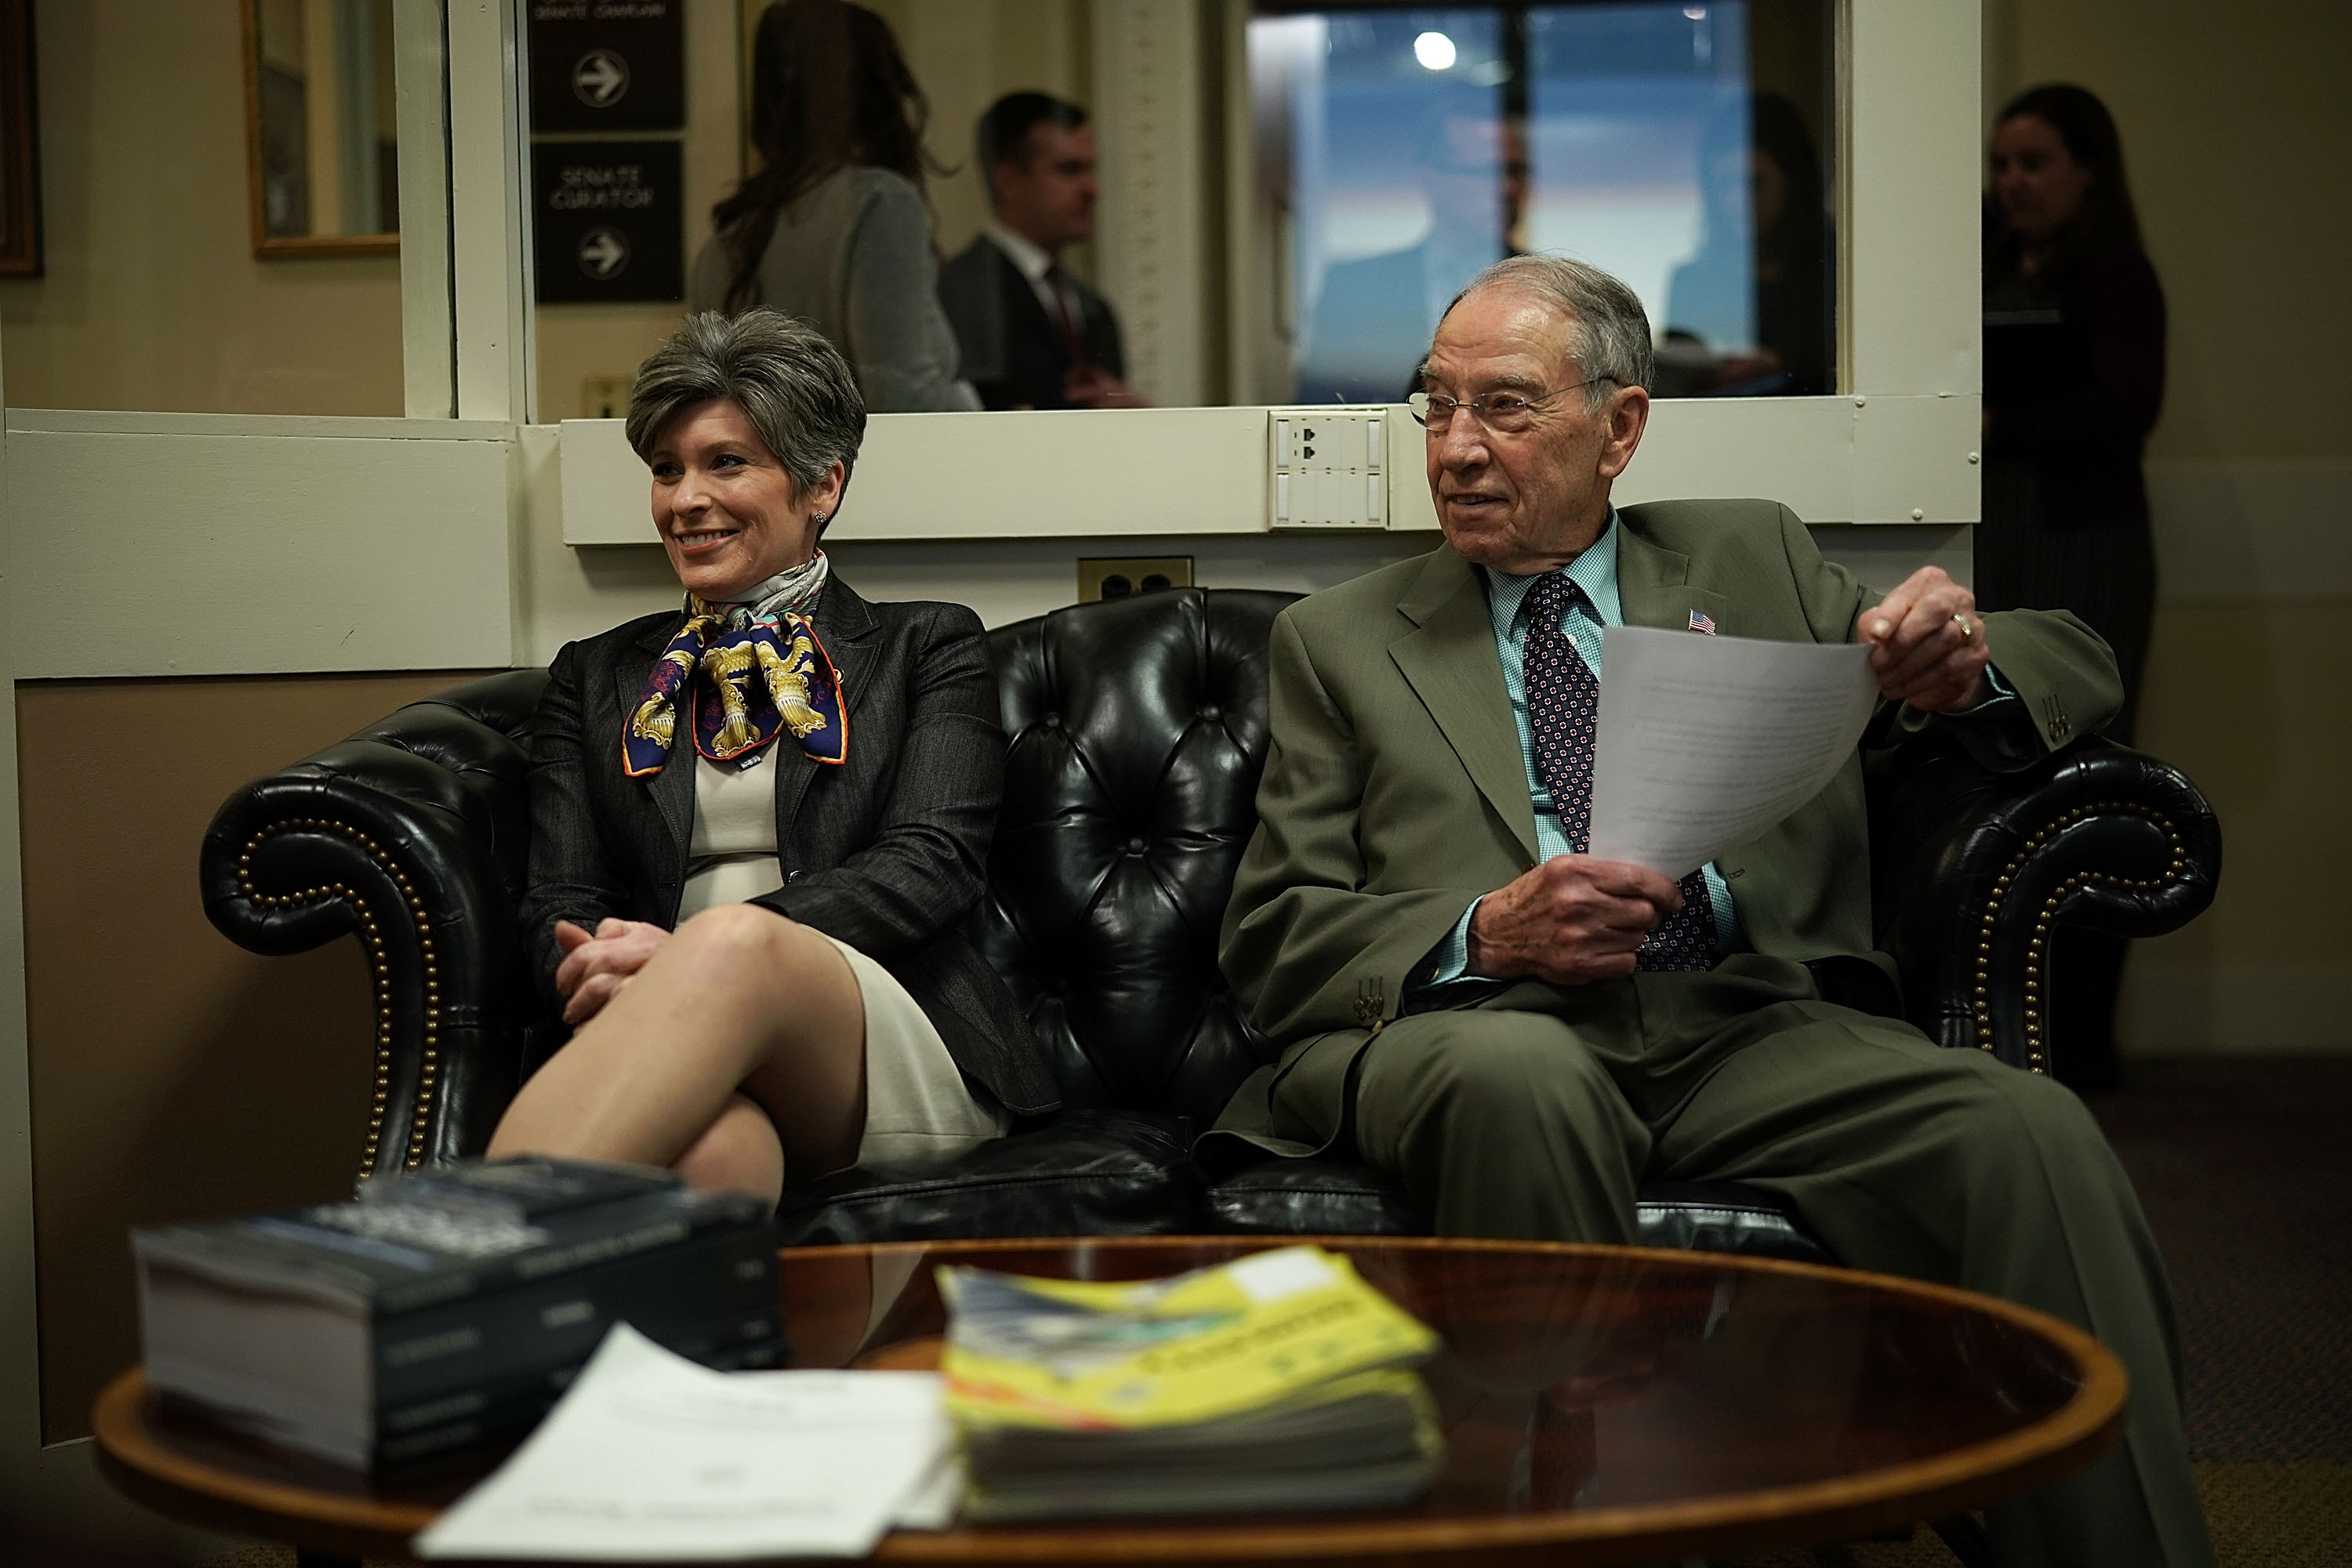 U.S. Sens. Chuck Grassley (R) and Joni Ernst wait for the beginning of a news conference on immigration February 12, 2018 at the Capitol in Washington, DC. (Photo by Alex Wong/Getty Images)